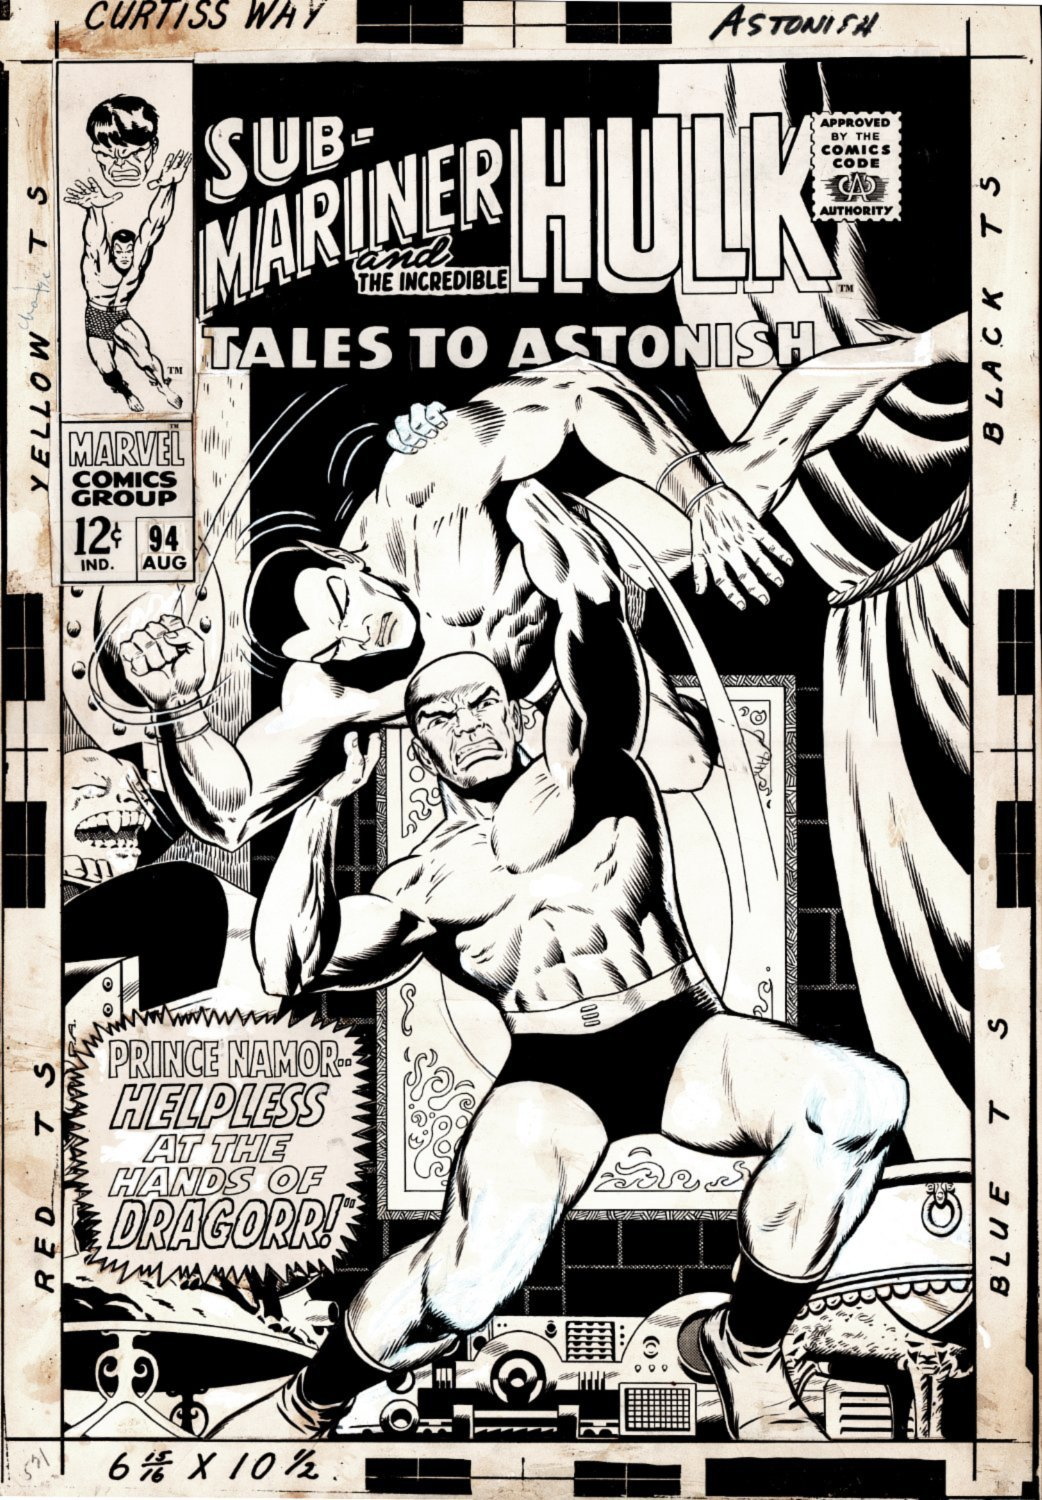 TALES TO ASTONISH # 94 LARGE ART COVER! (SUB-MARINER BATTLES DRAGORR!) 1967